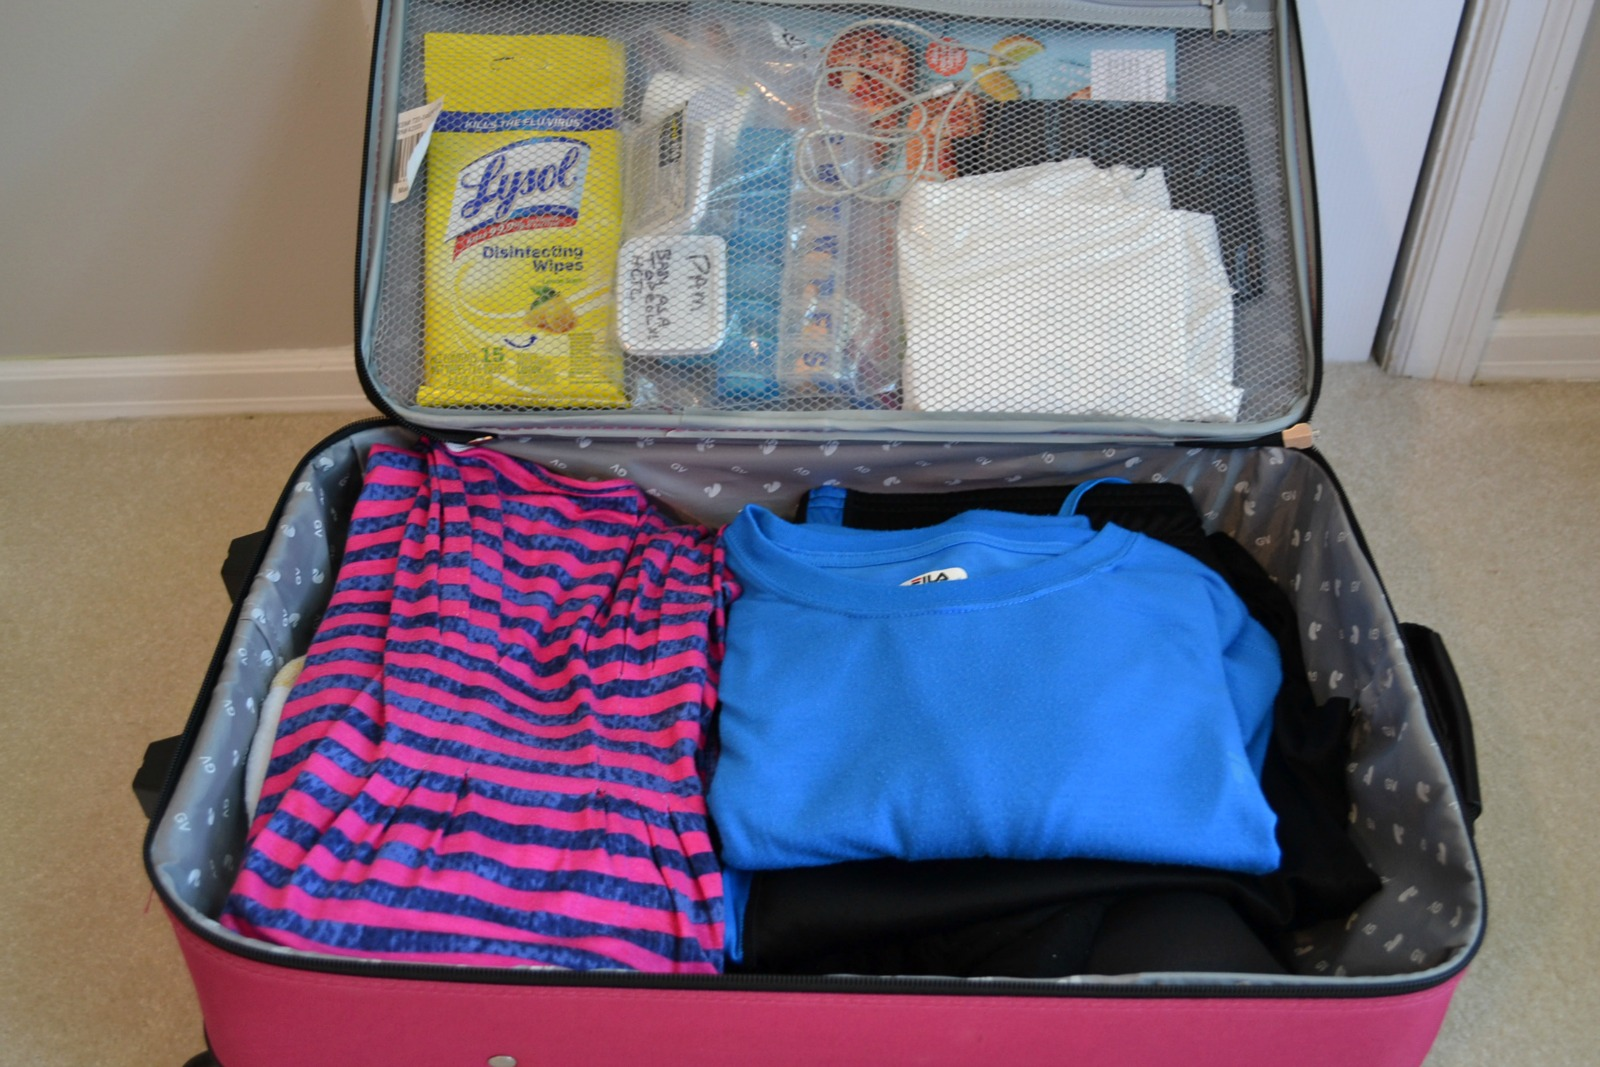 An organized system on packing for a road trip that will make your vacation go so much smoother.